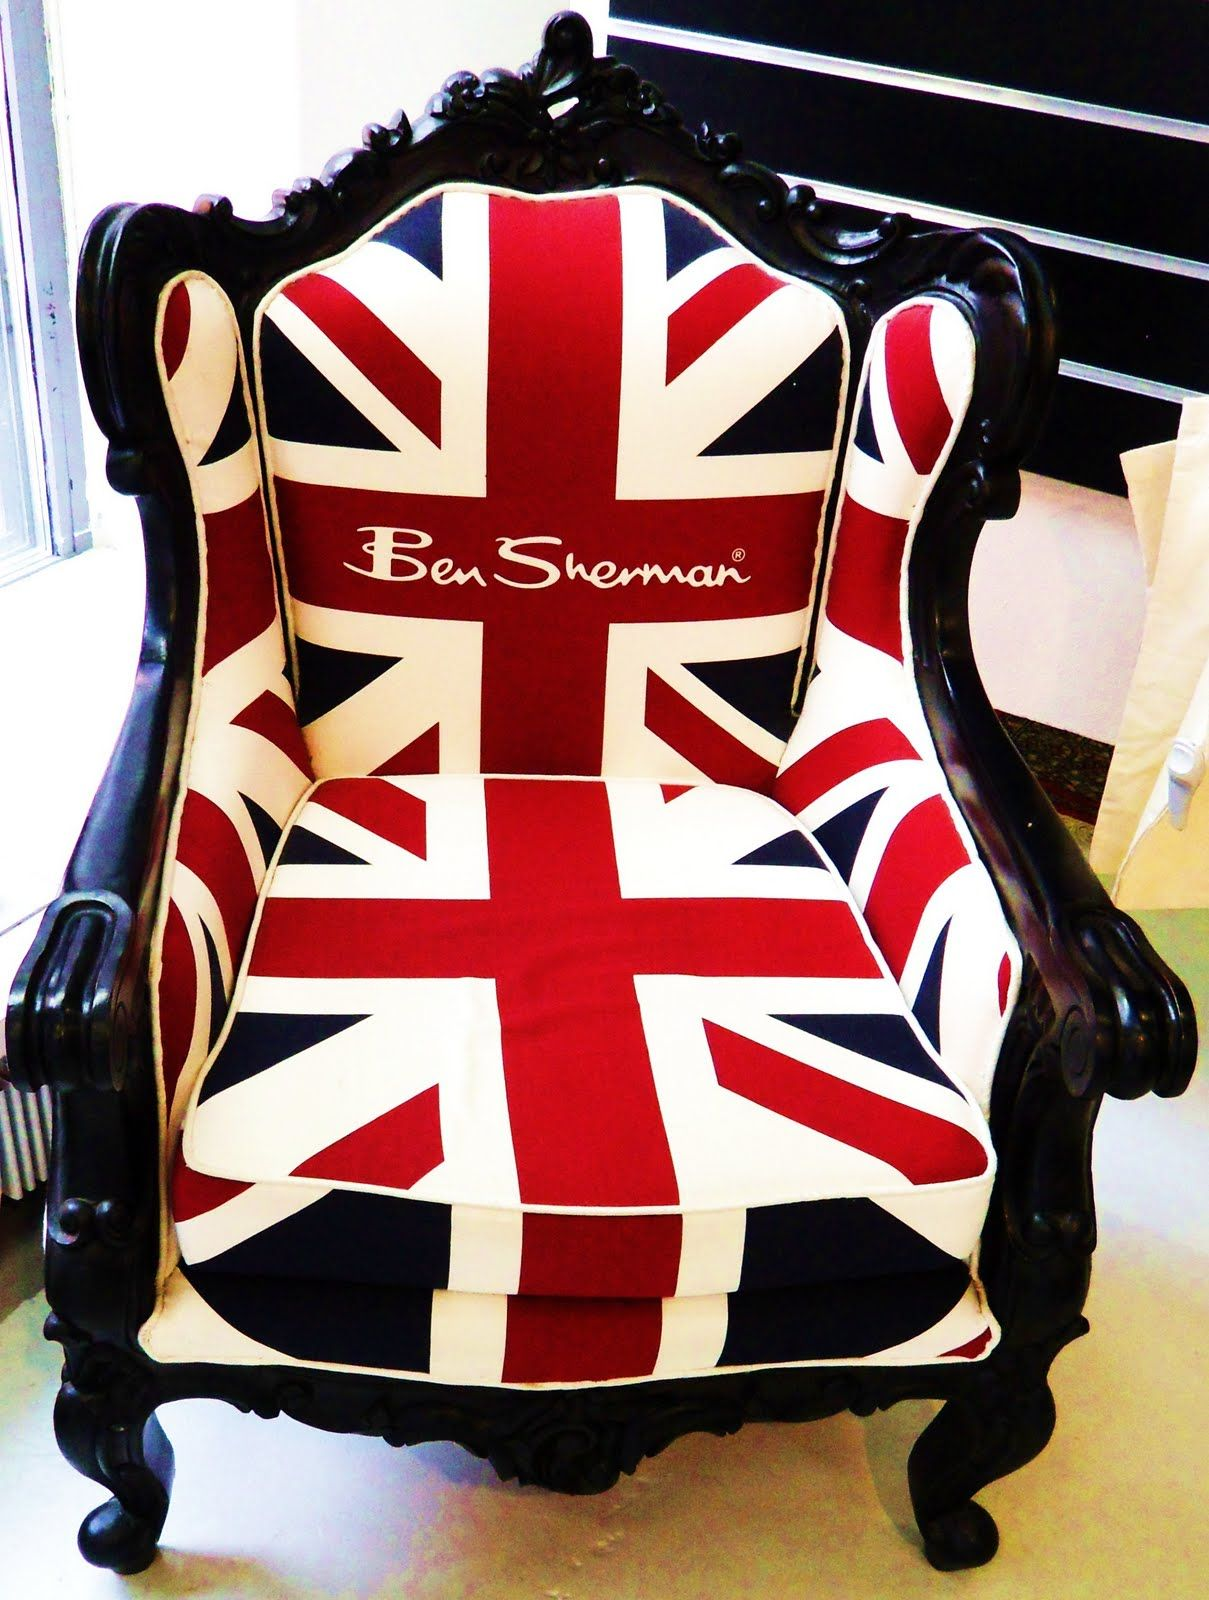 cfbdc5f3249e The Famous Ben Sherman Union Jack Chair | Terribly British in 2019 ...